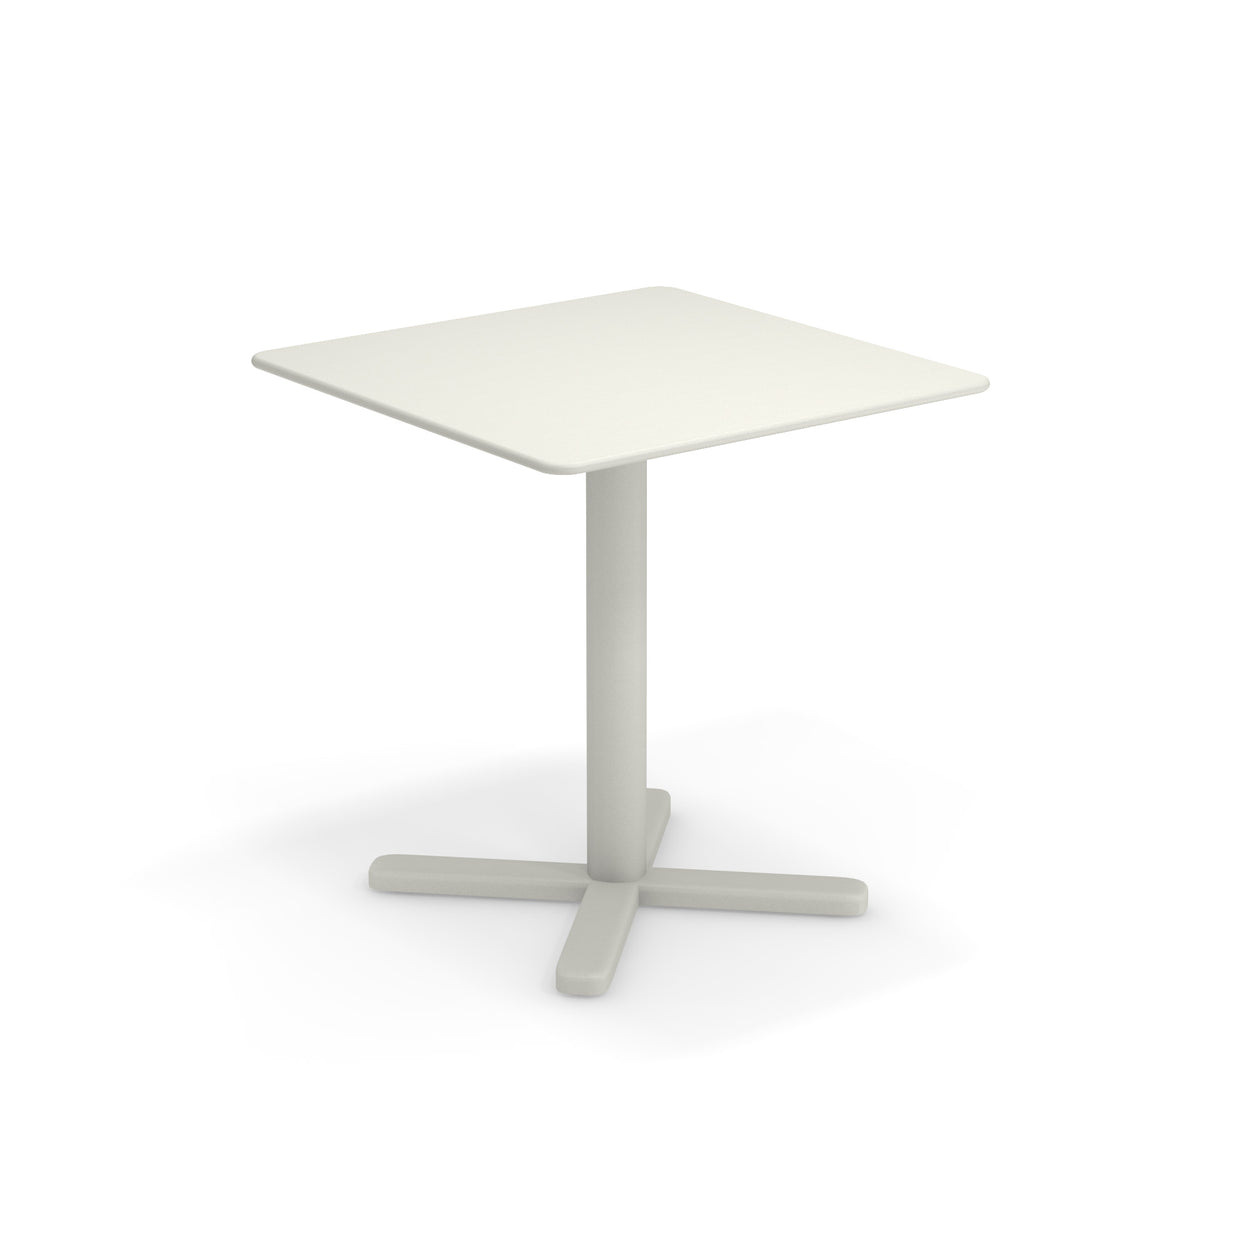 EMU Darwin Square Folding Table (2 Sizes)